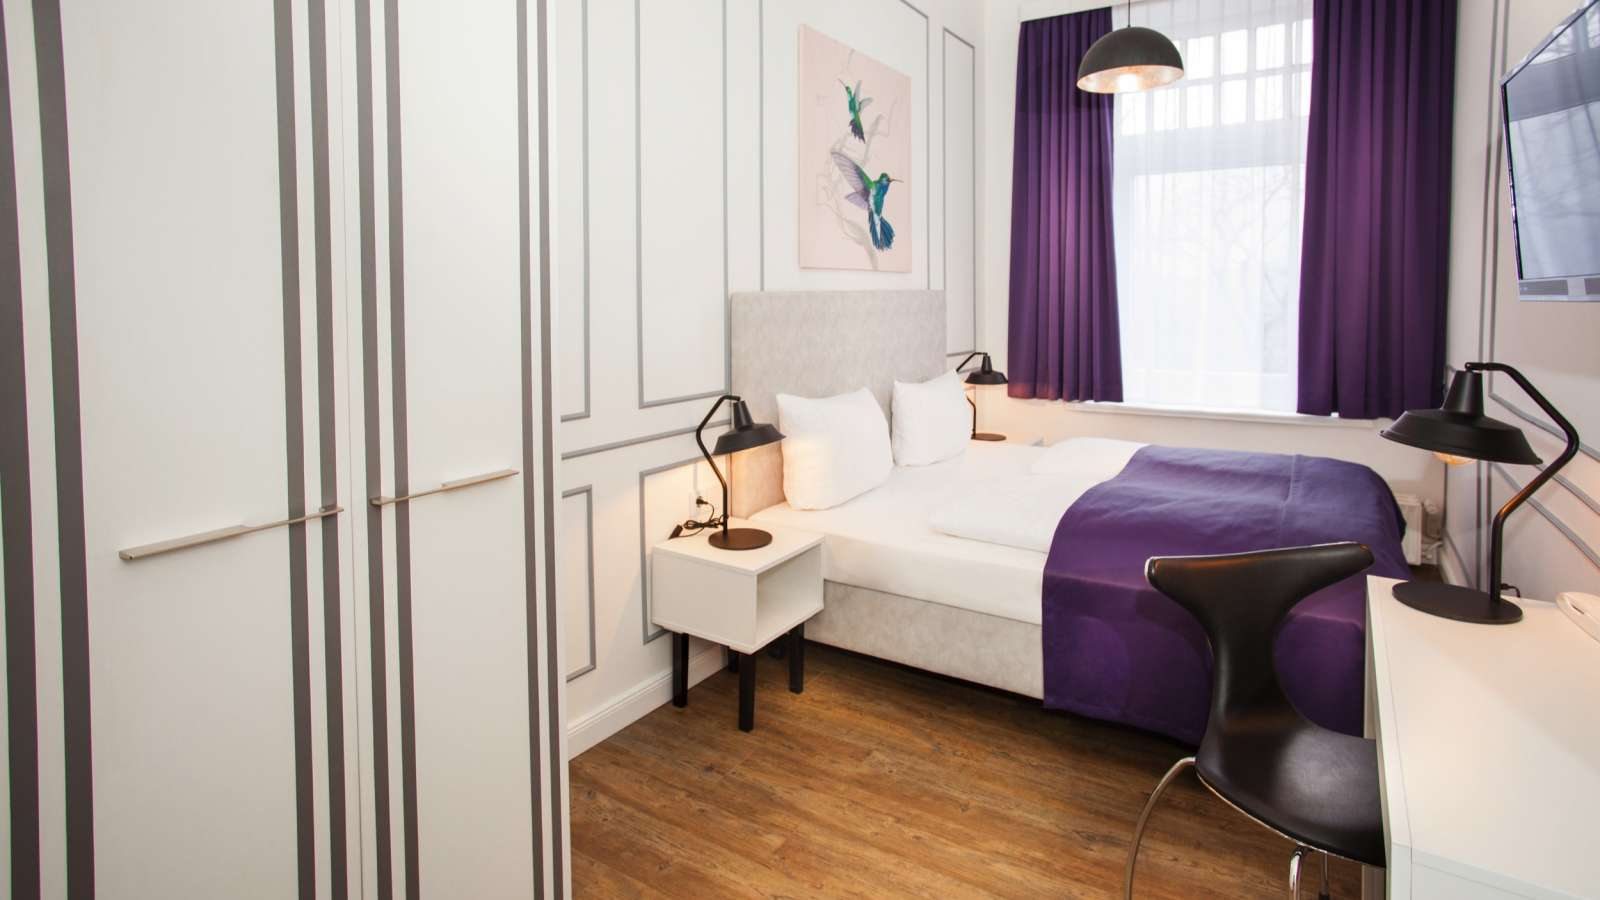 A double room at Centro Hotel Boutique 56 in Hamburg